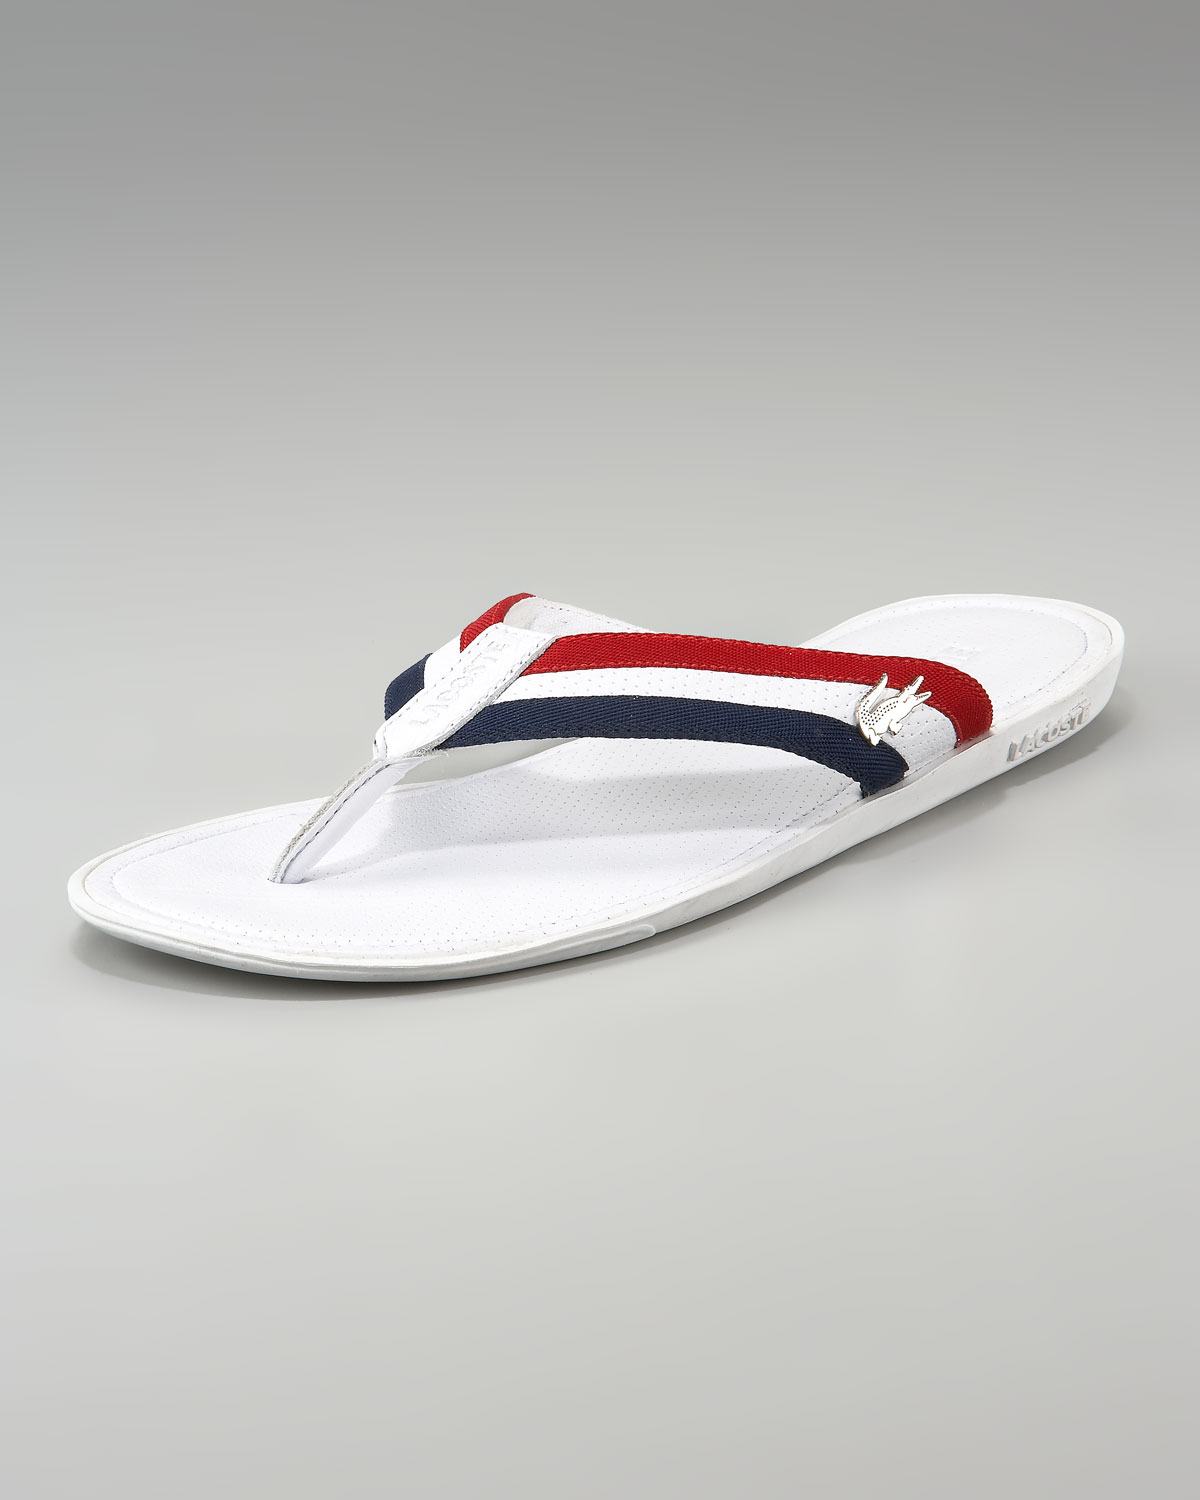 29f60b5bb593 Lacoste Carros Striped Flip-flop in White for Men - Lyst